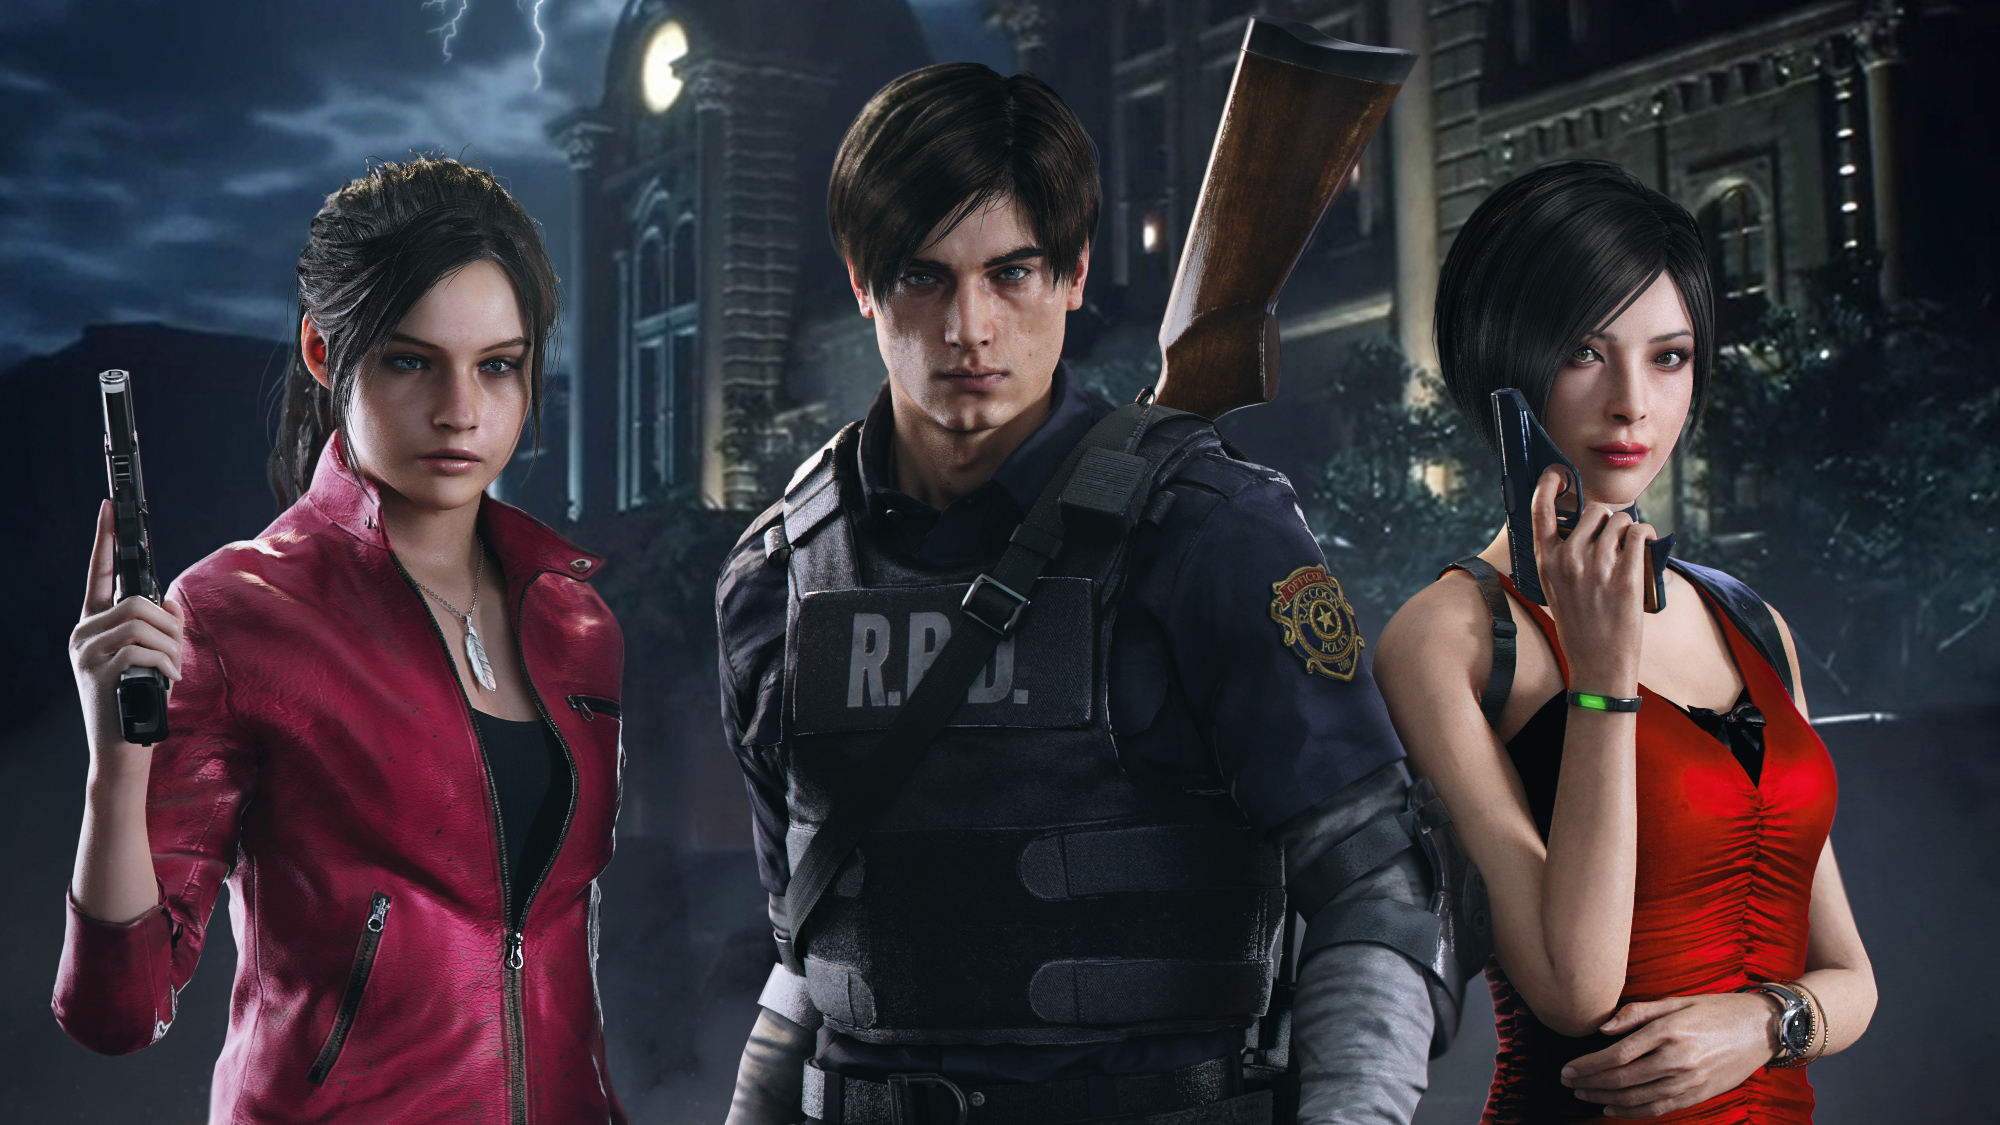 Resident Evil 2 Arts Hd Games 4k Wallpapers Images Backgrounds